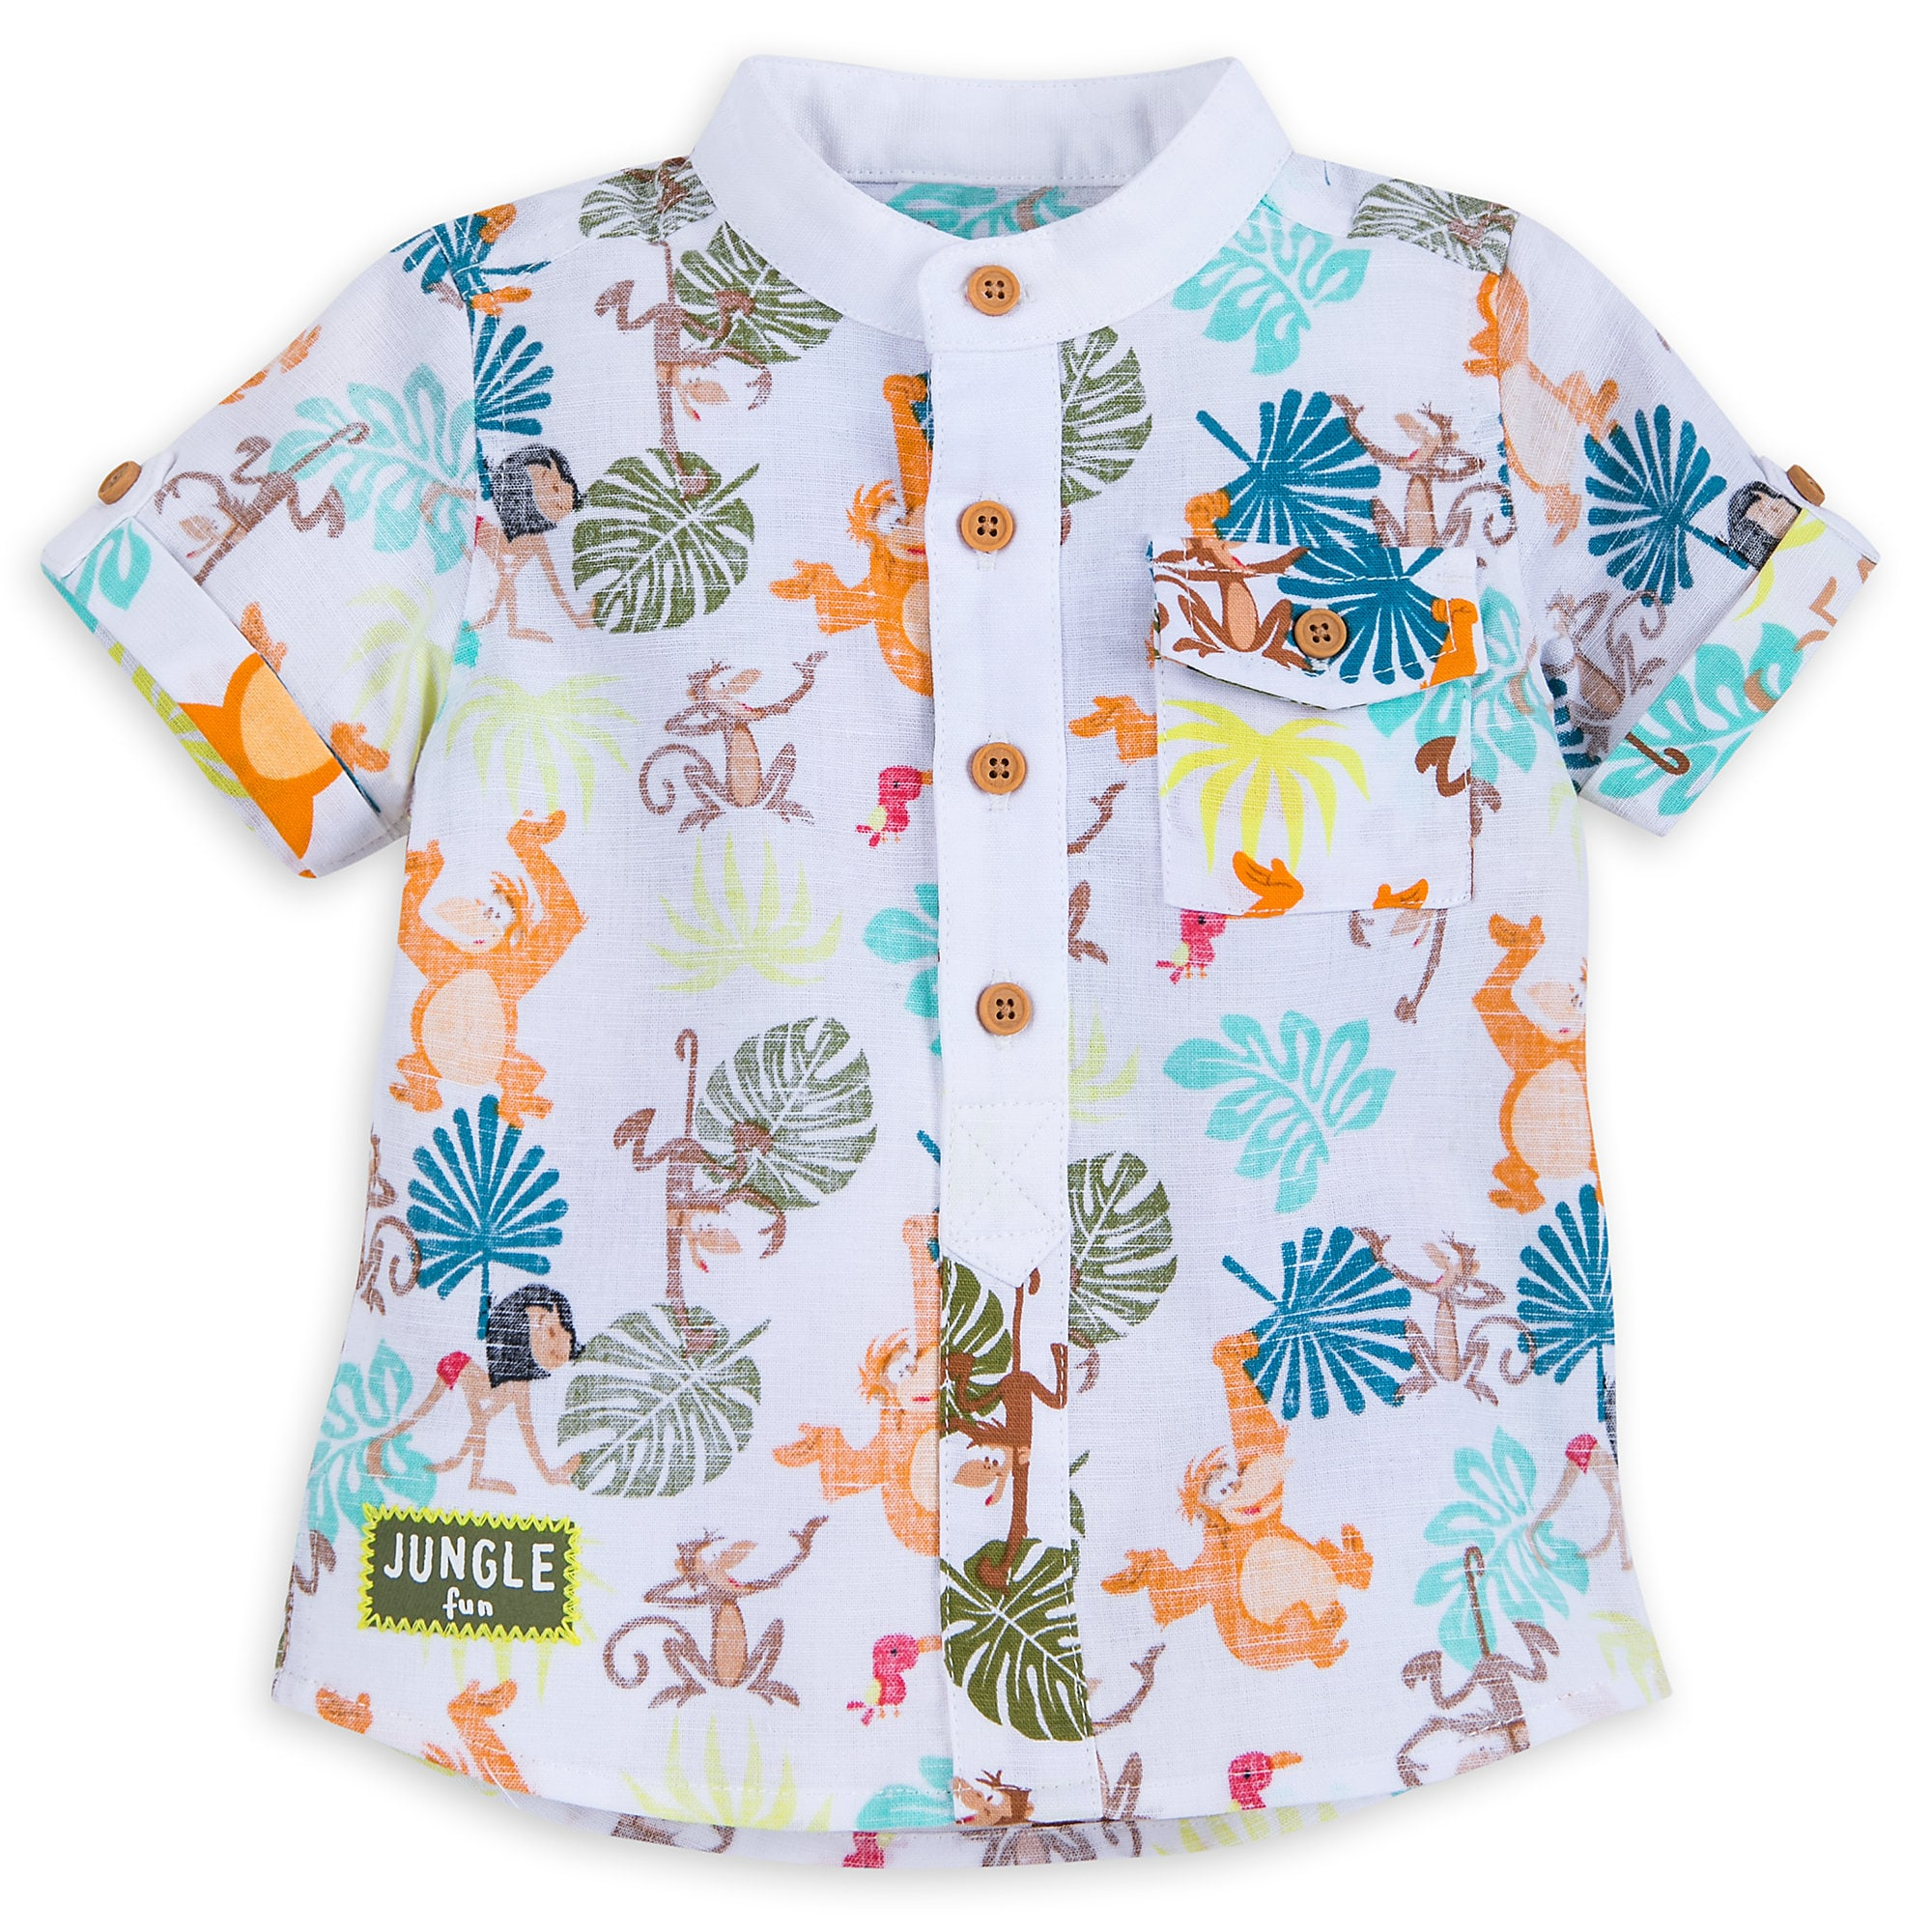 The Jungle Book Woven Shirt for Baby